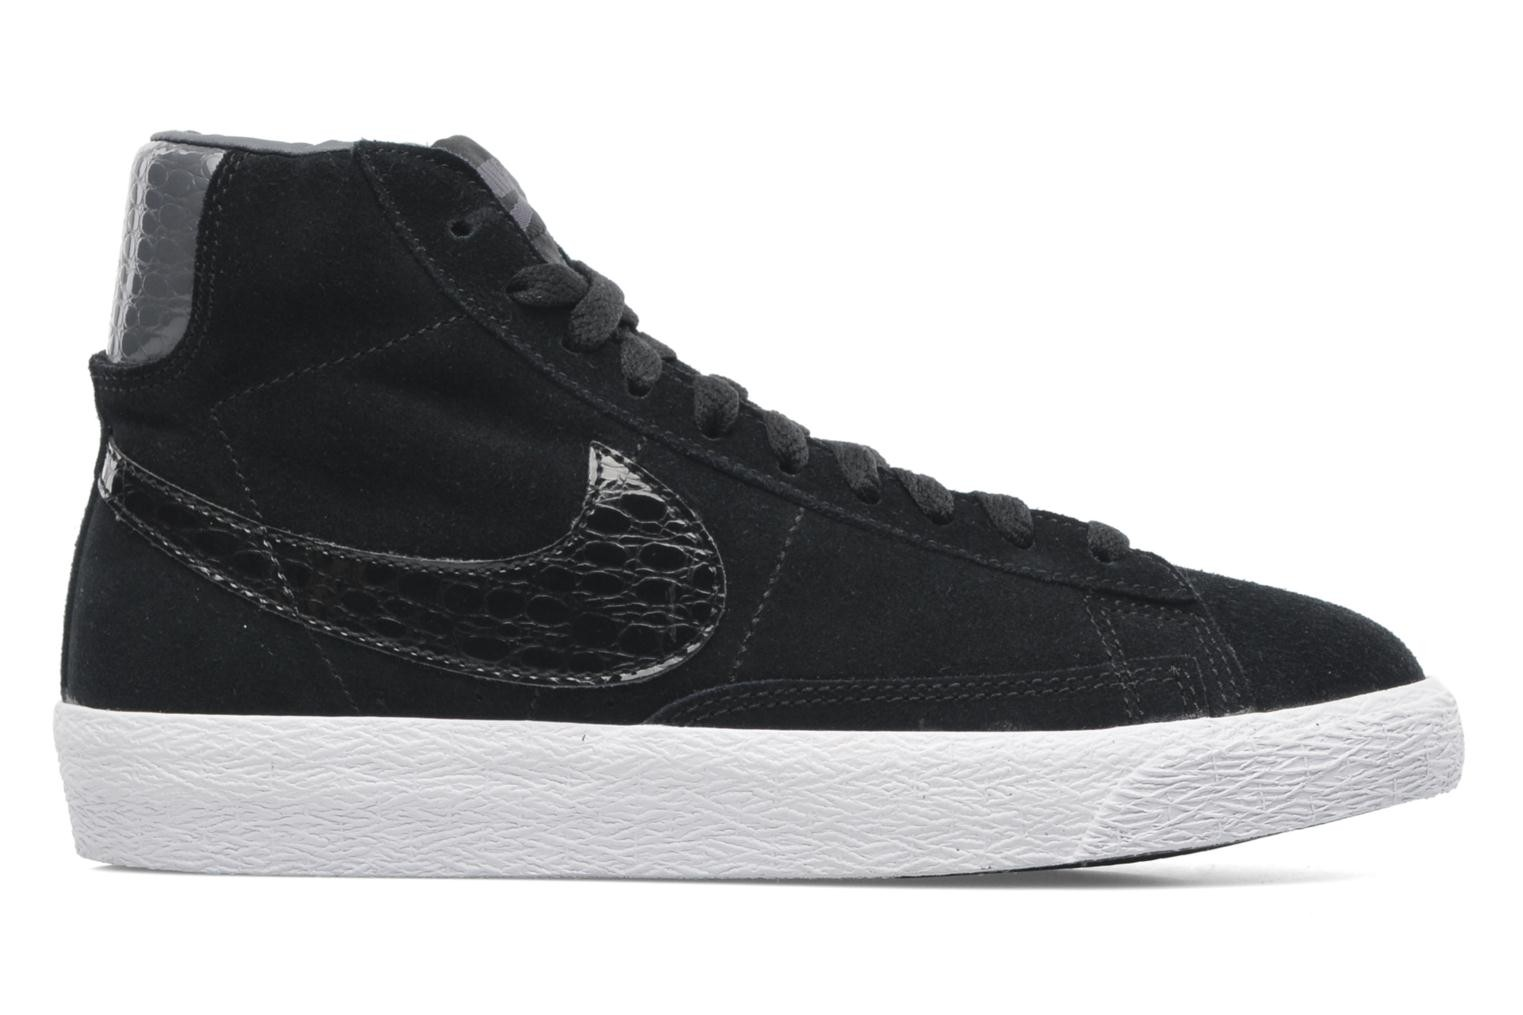 Nike Blazer Mid Vintage (GS) black Dark Grey Youths Trainers